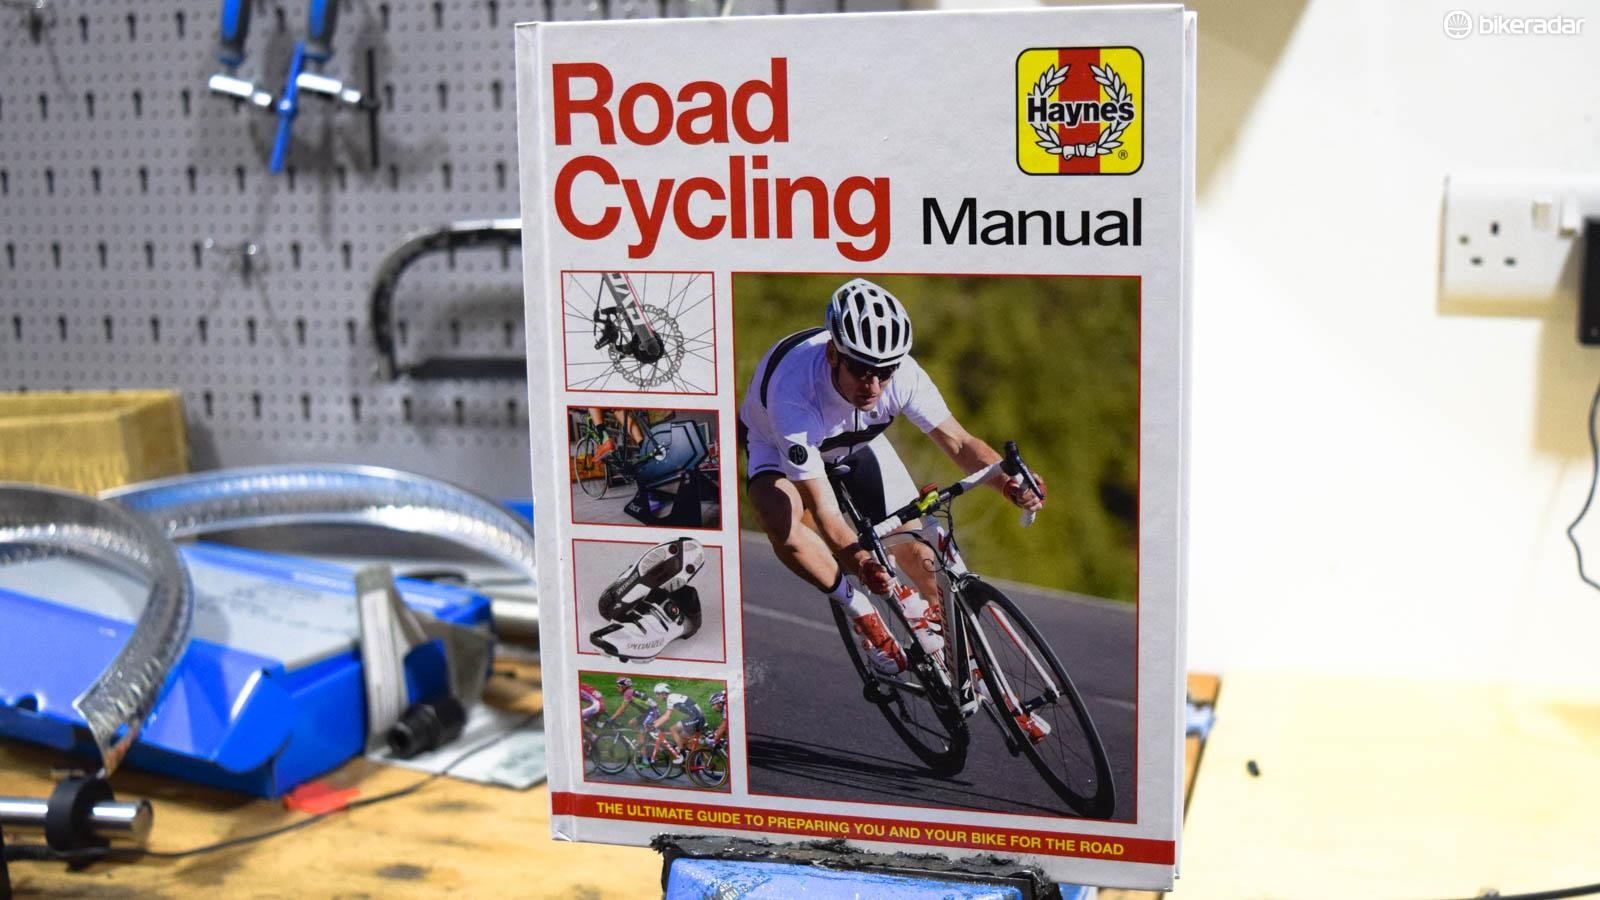 The new Haynes Road Cycling Manual — like a car maintenance guide, but for cyclists